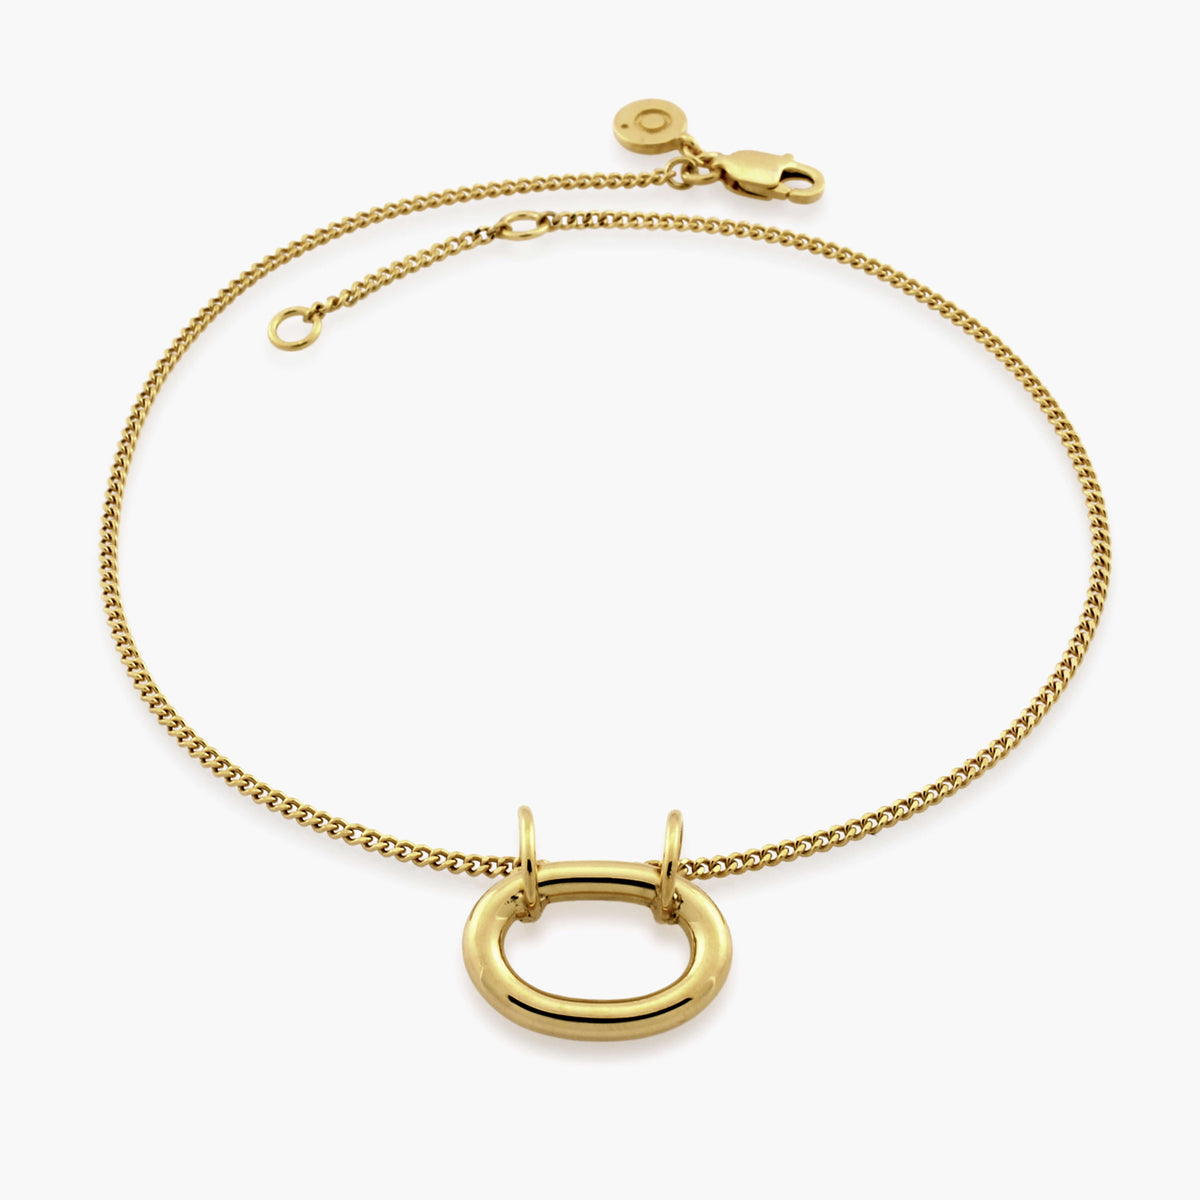 A beautiful gold anklet with a gold oval pendant